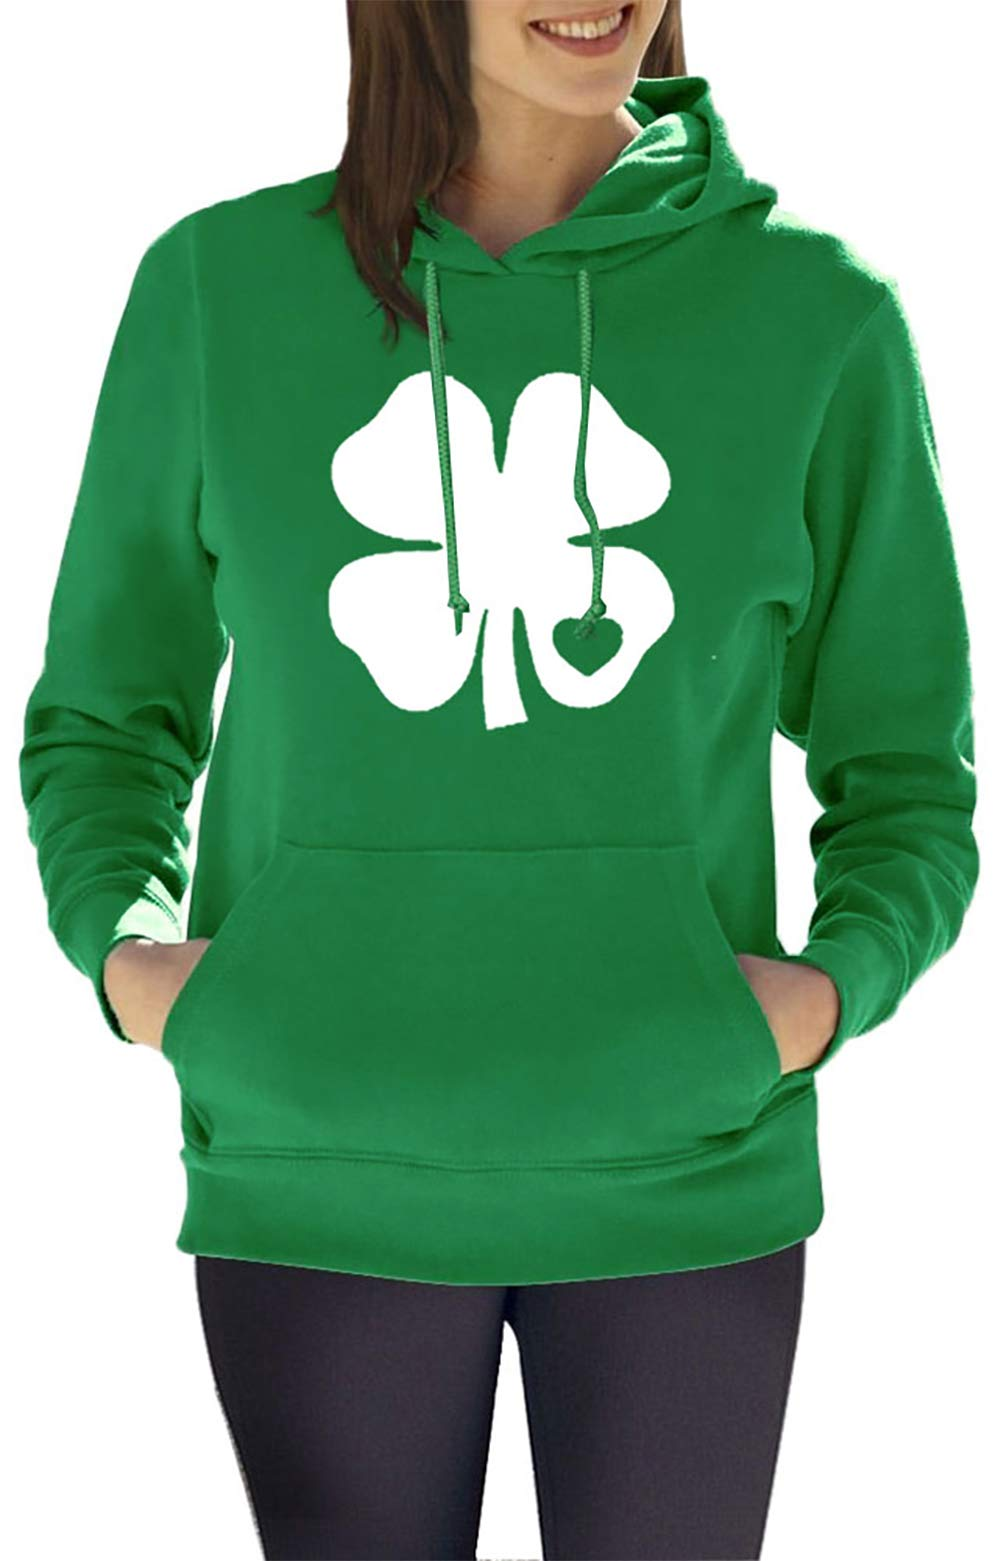 For G and PL Women's St. Patrick's Day Green Hoodie with Pocket